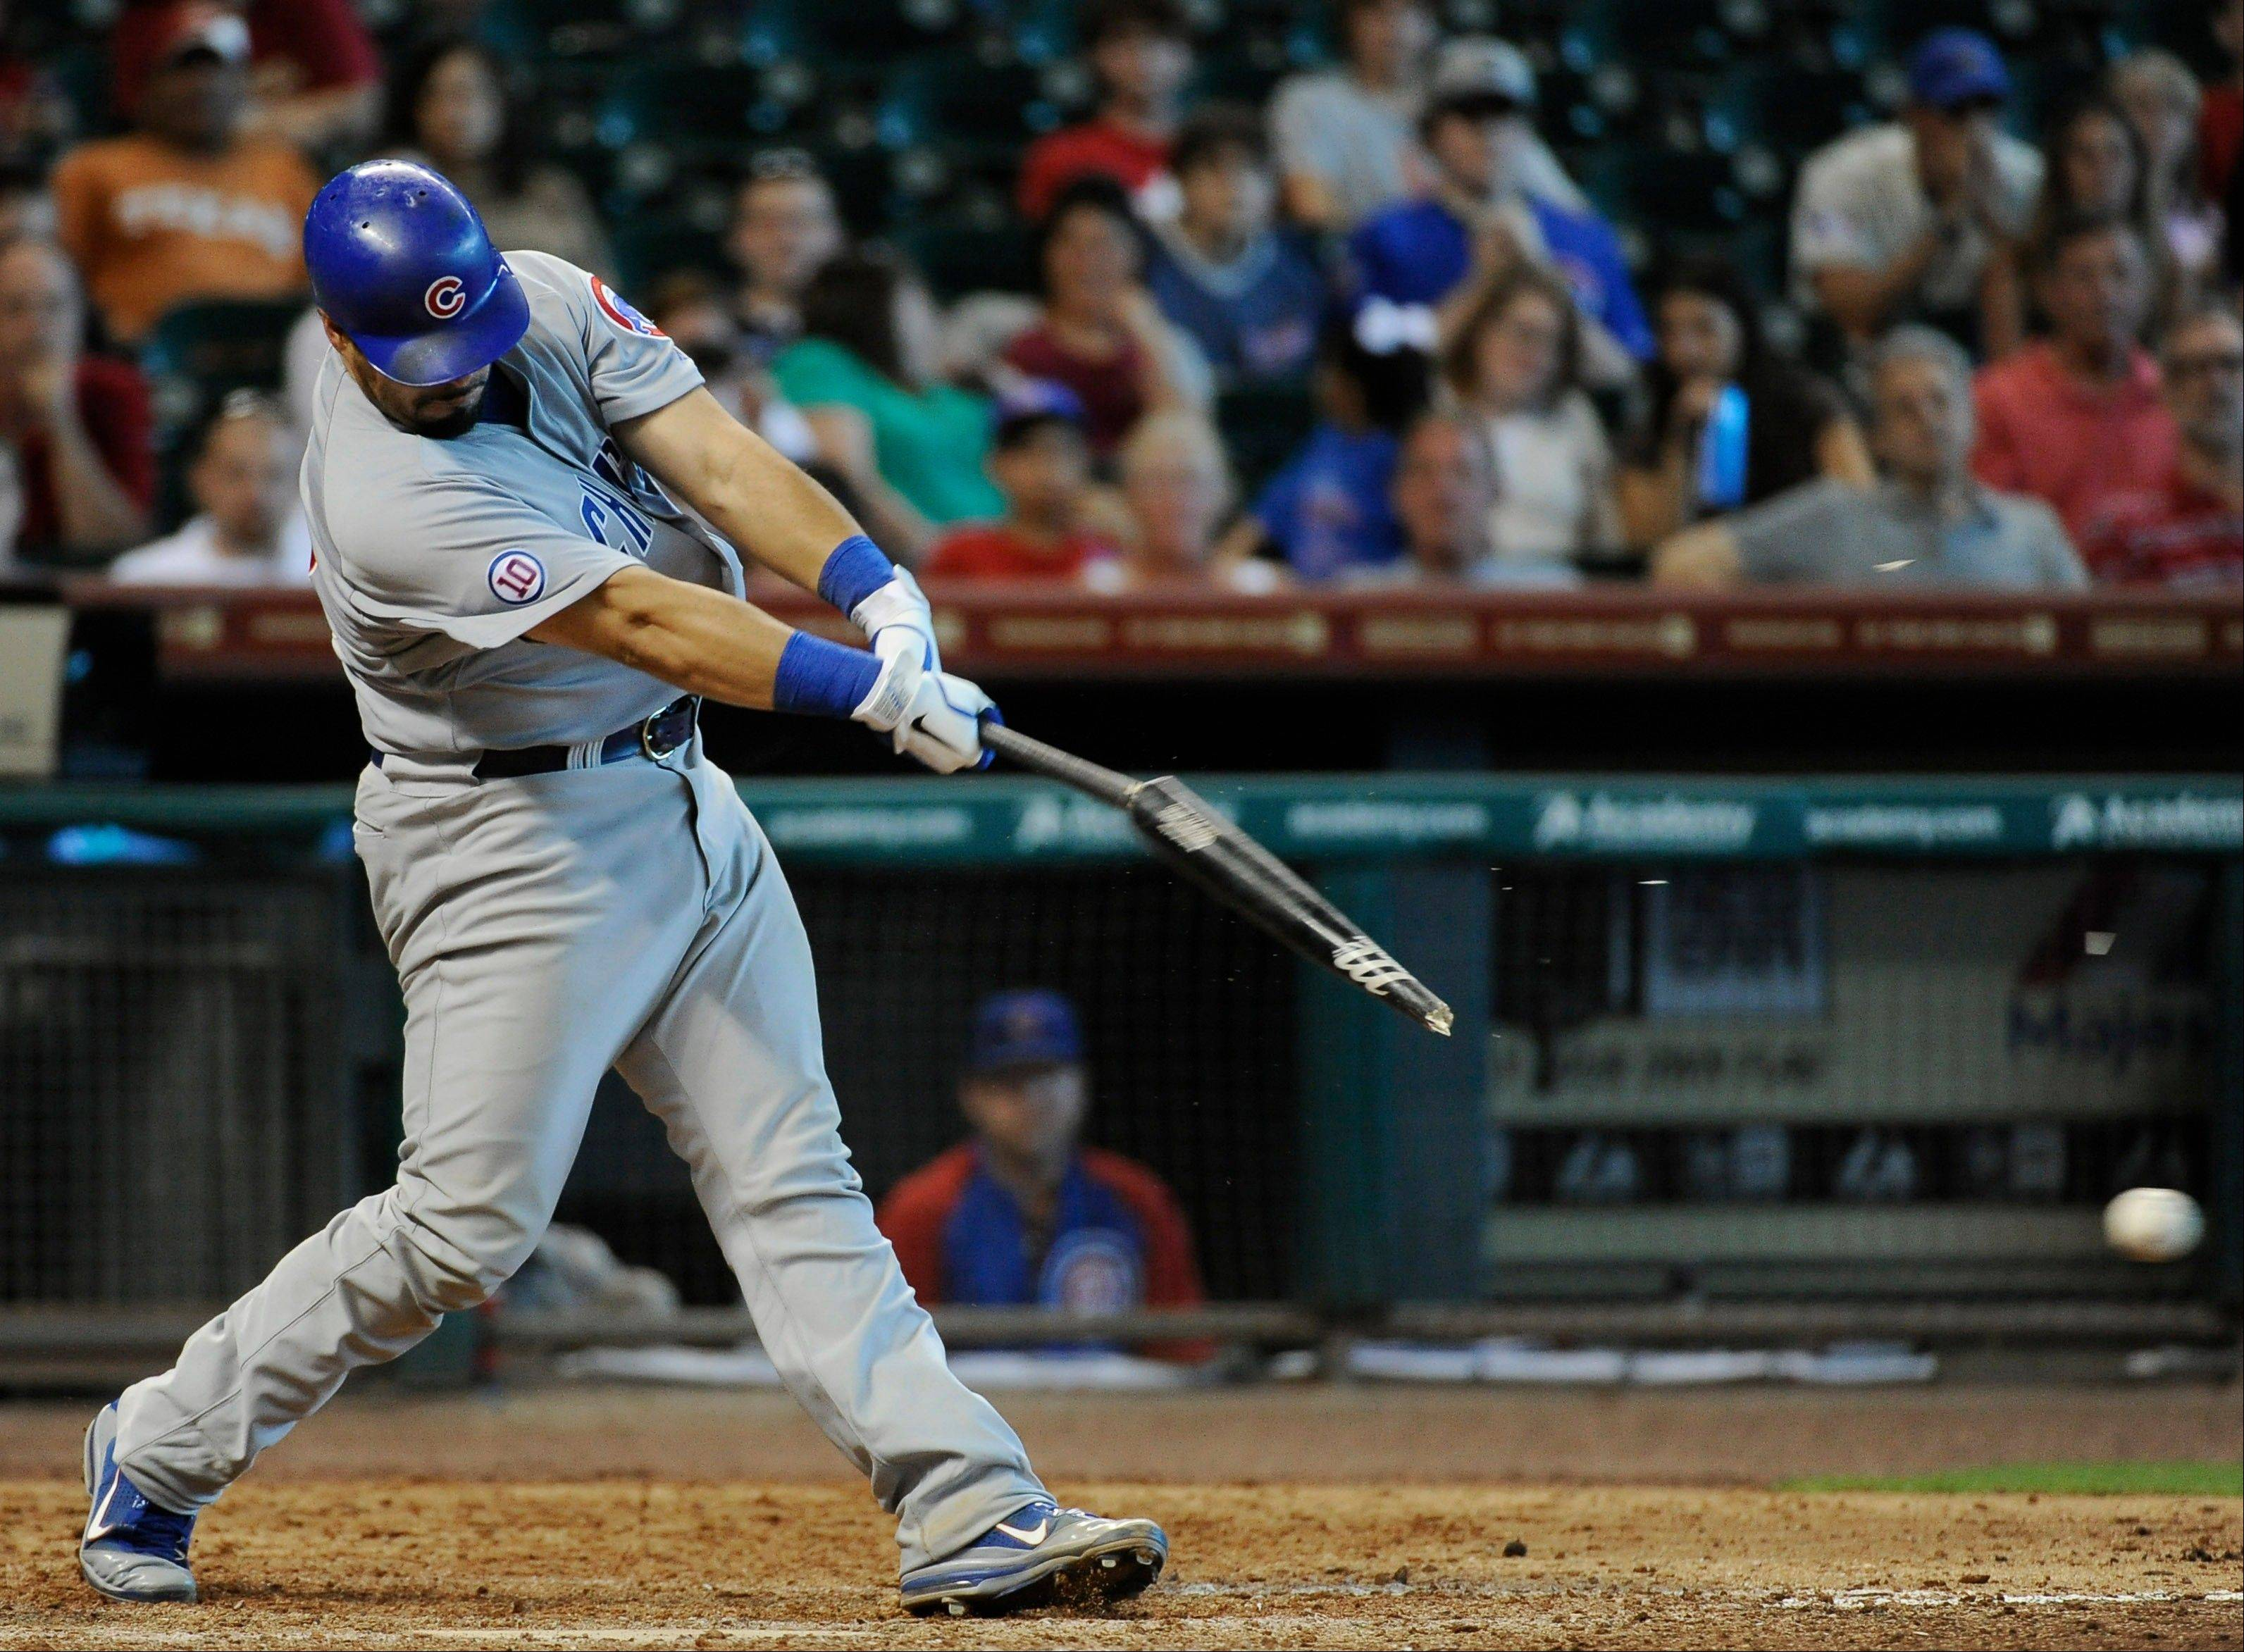 The Cubs� Geovany Soto breaks his bat as he grounds into a fielder�s choice in the ninth inning Wednesday.